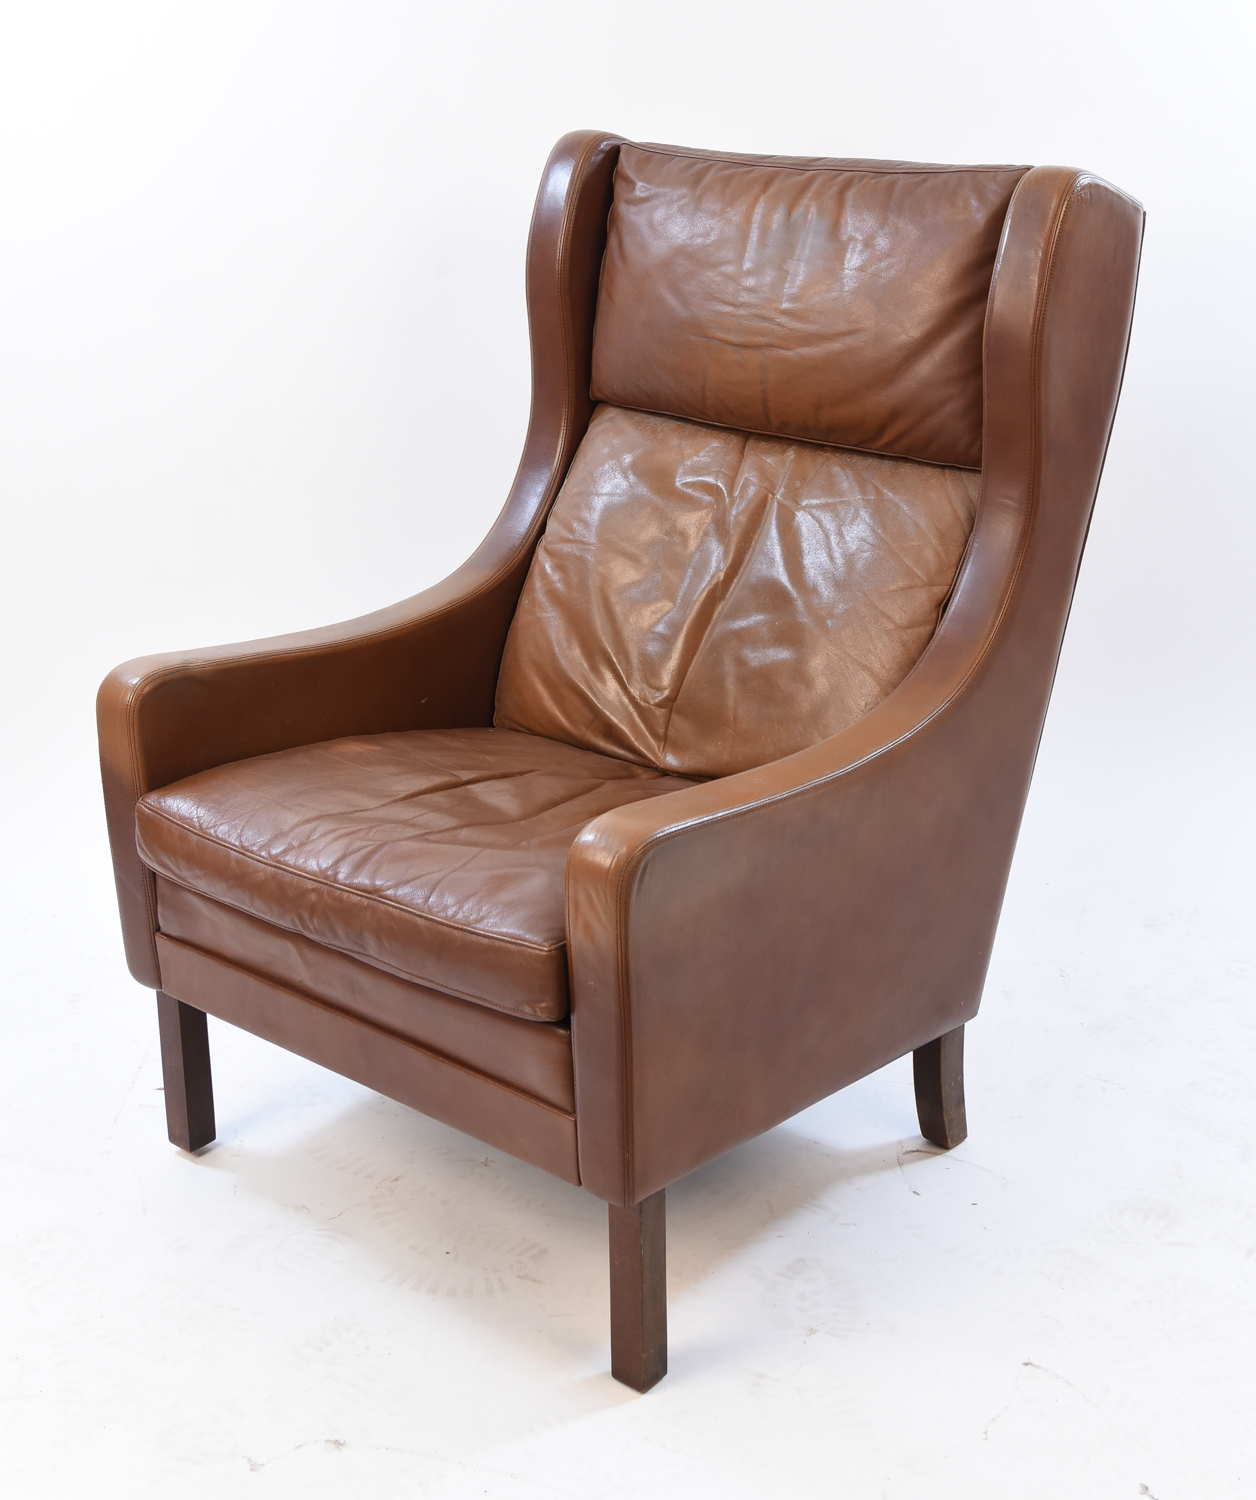 Brown Leather Wingback Chair Borge Mogensen Style Cognac Colored Leather Wingback Chair